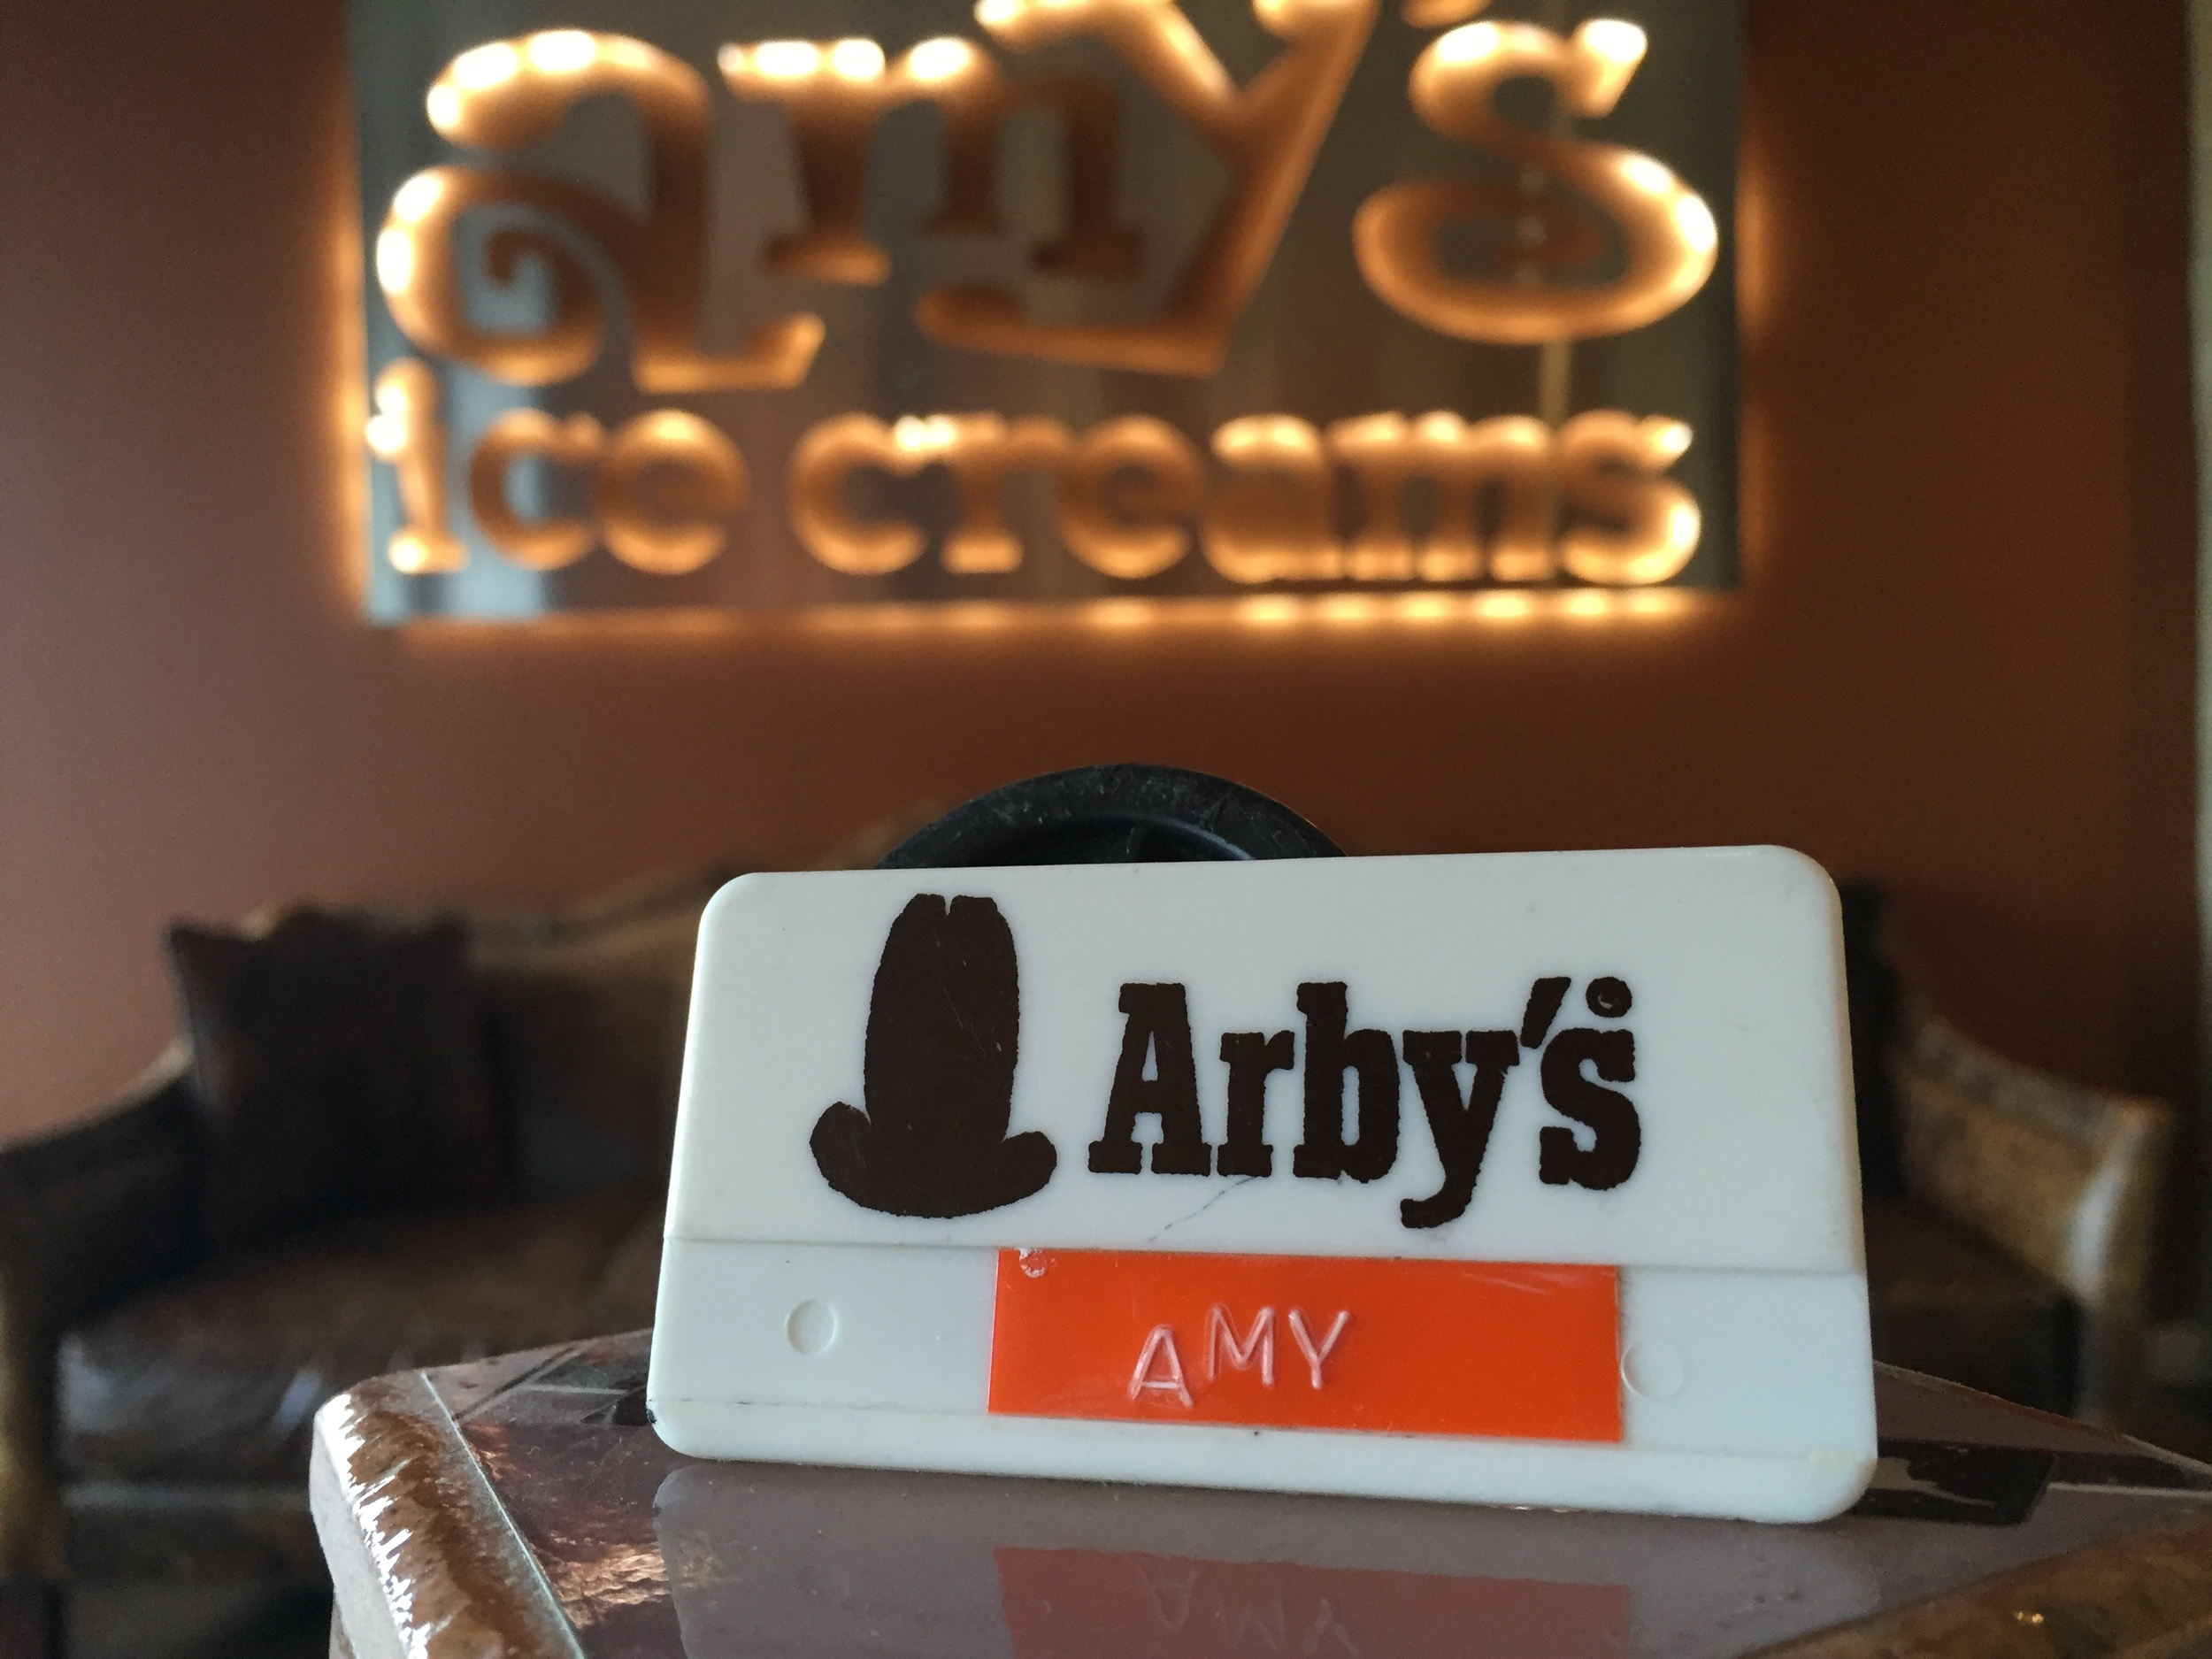 Amy's old name tag from her first job at Arby's